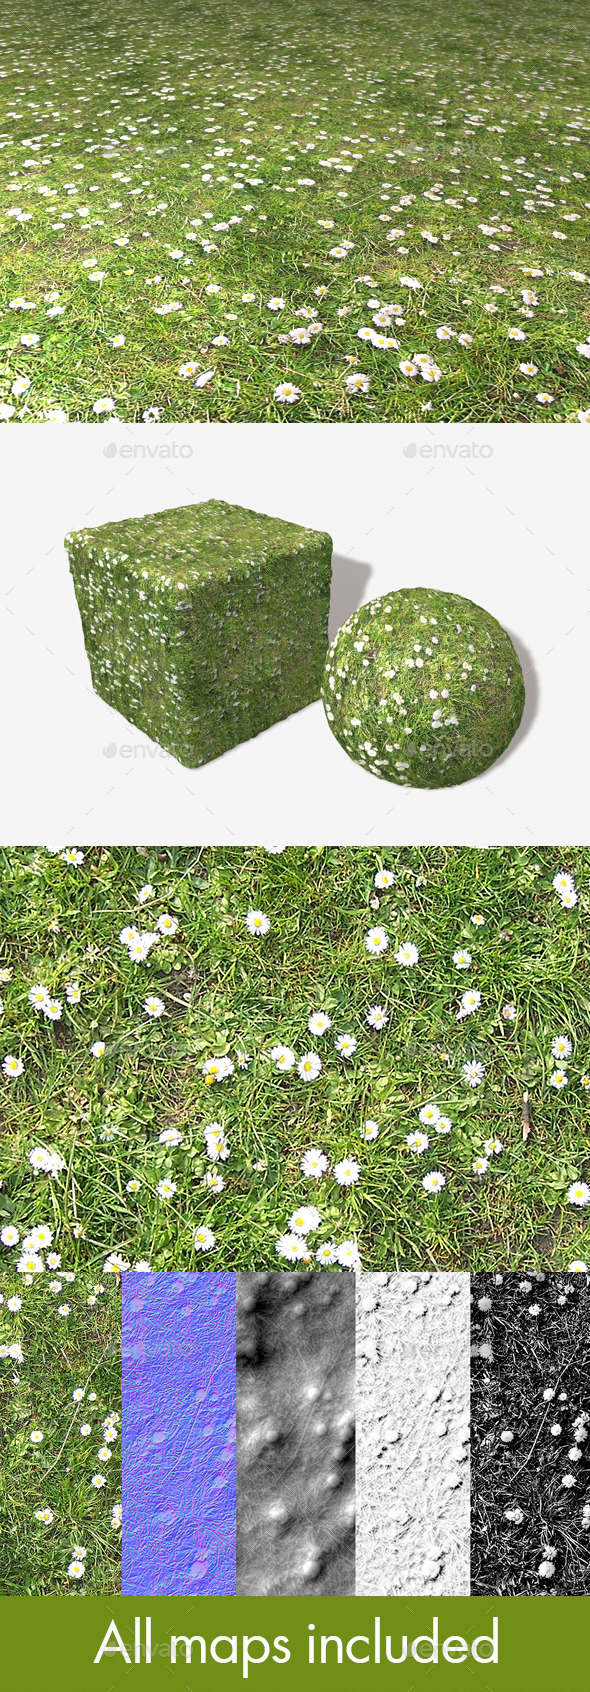 Daisies and Grass Seamless Texture - 3DOcean Item for Sale